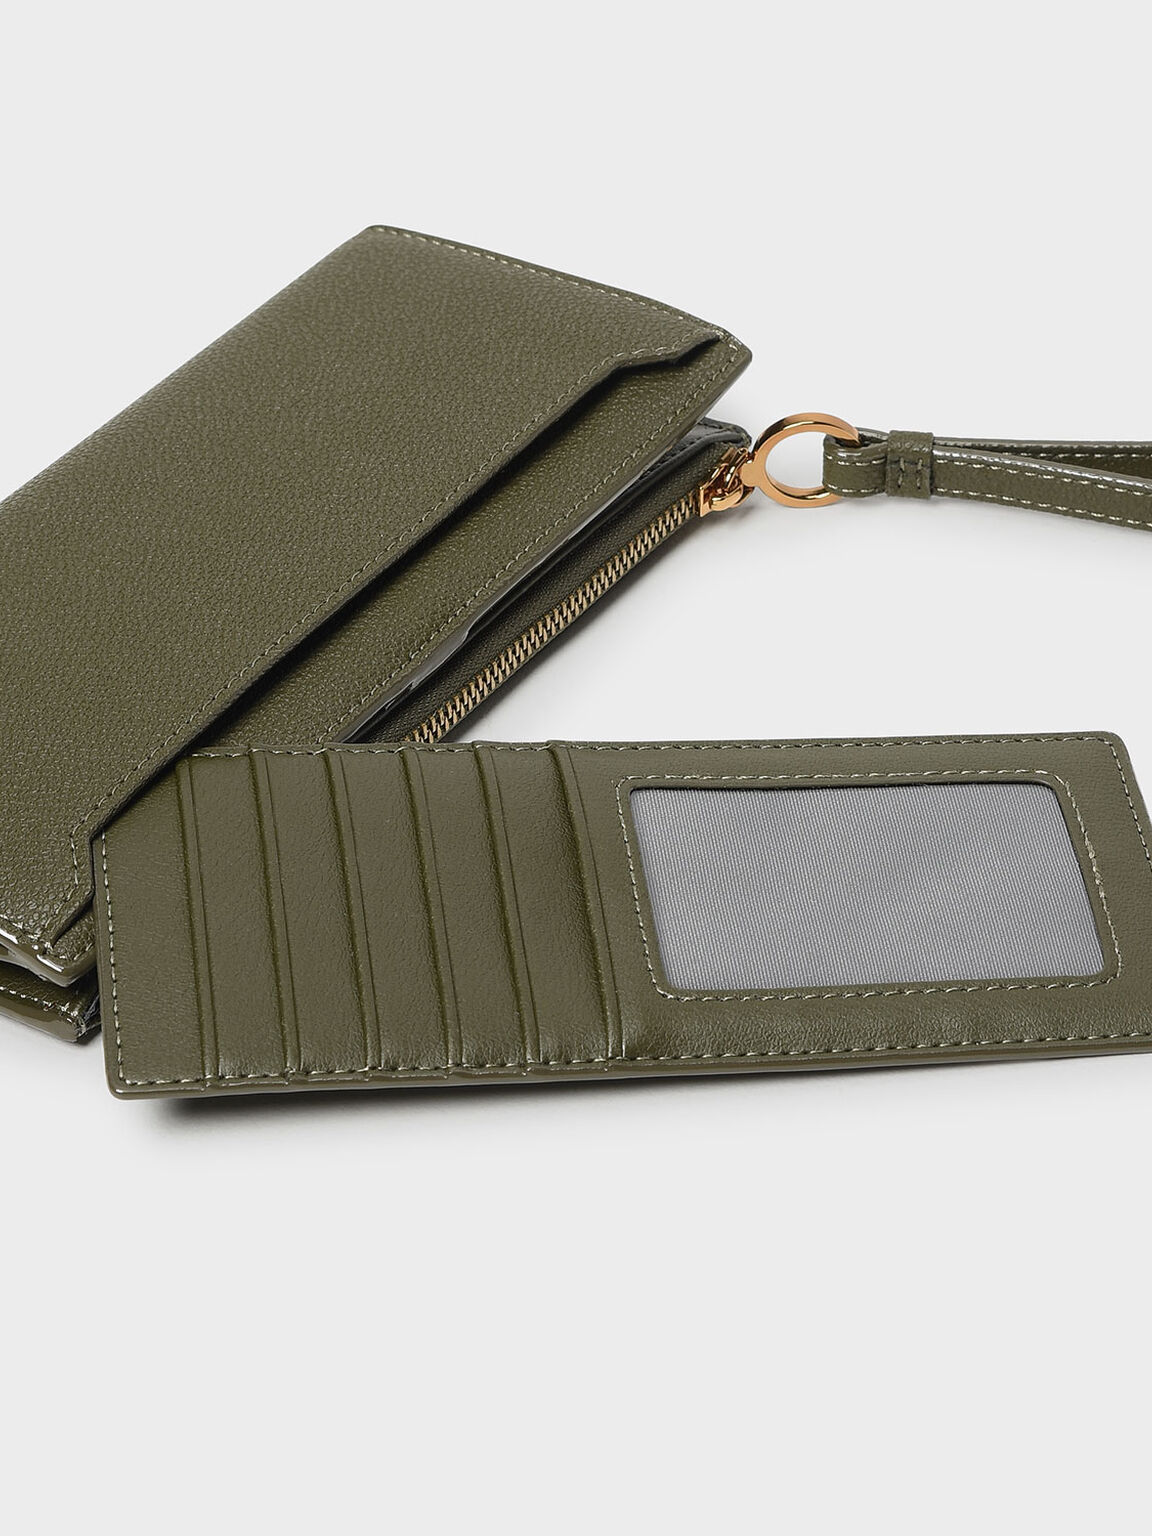 Wristlet Handle Wallet, Olive, hi-res